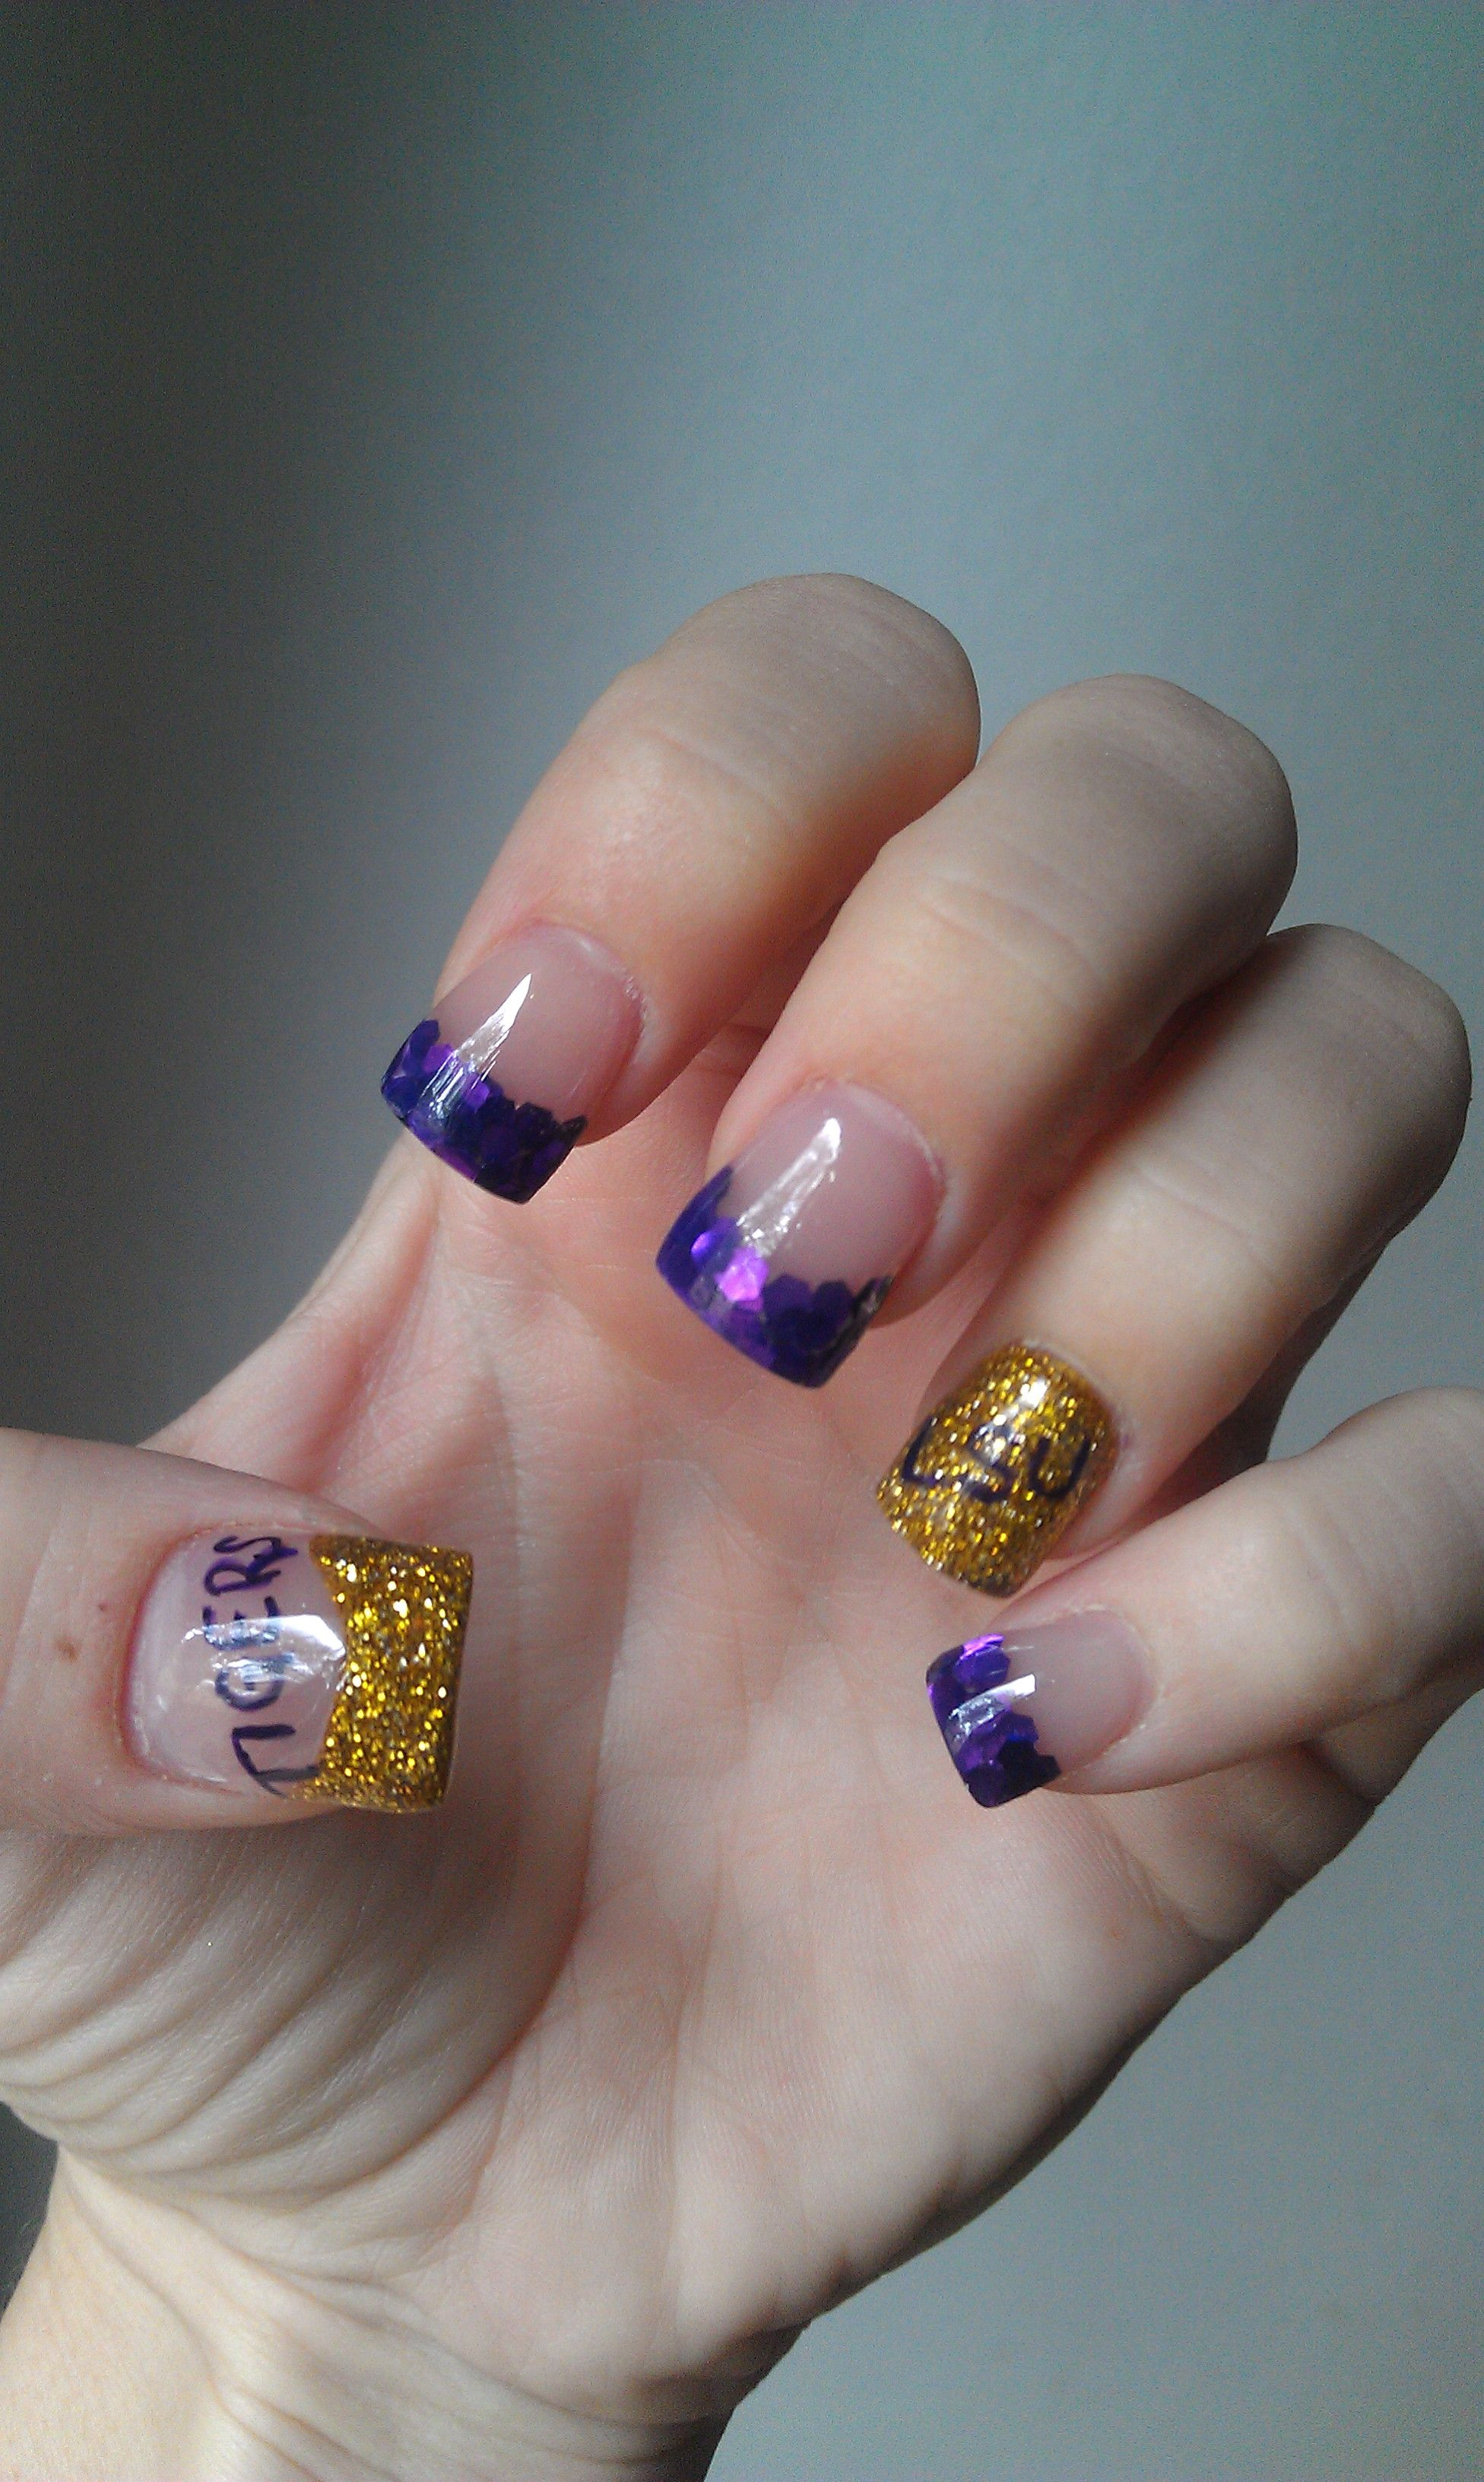 My nails and nail art idea. Geaux Tigers!! #lsu #geaux #louisiana ...